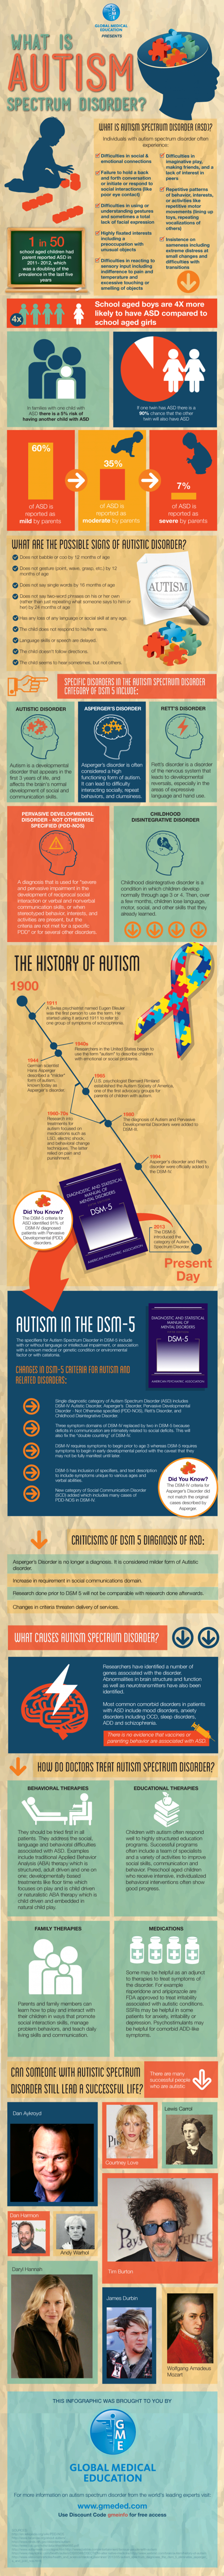 What Is Autism? infographic